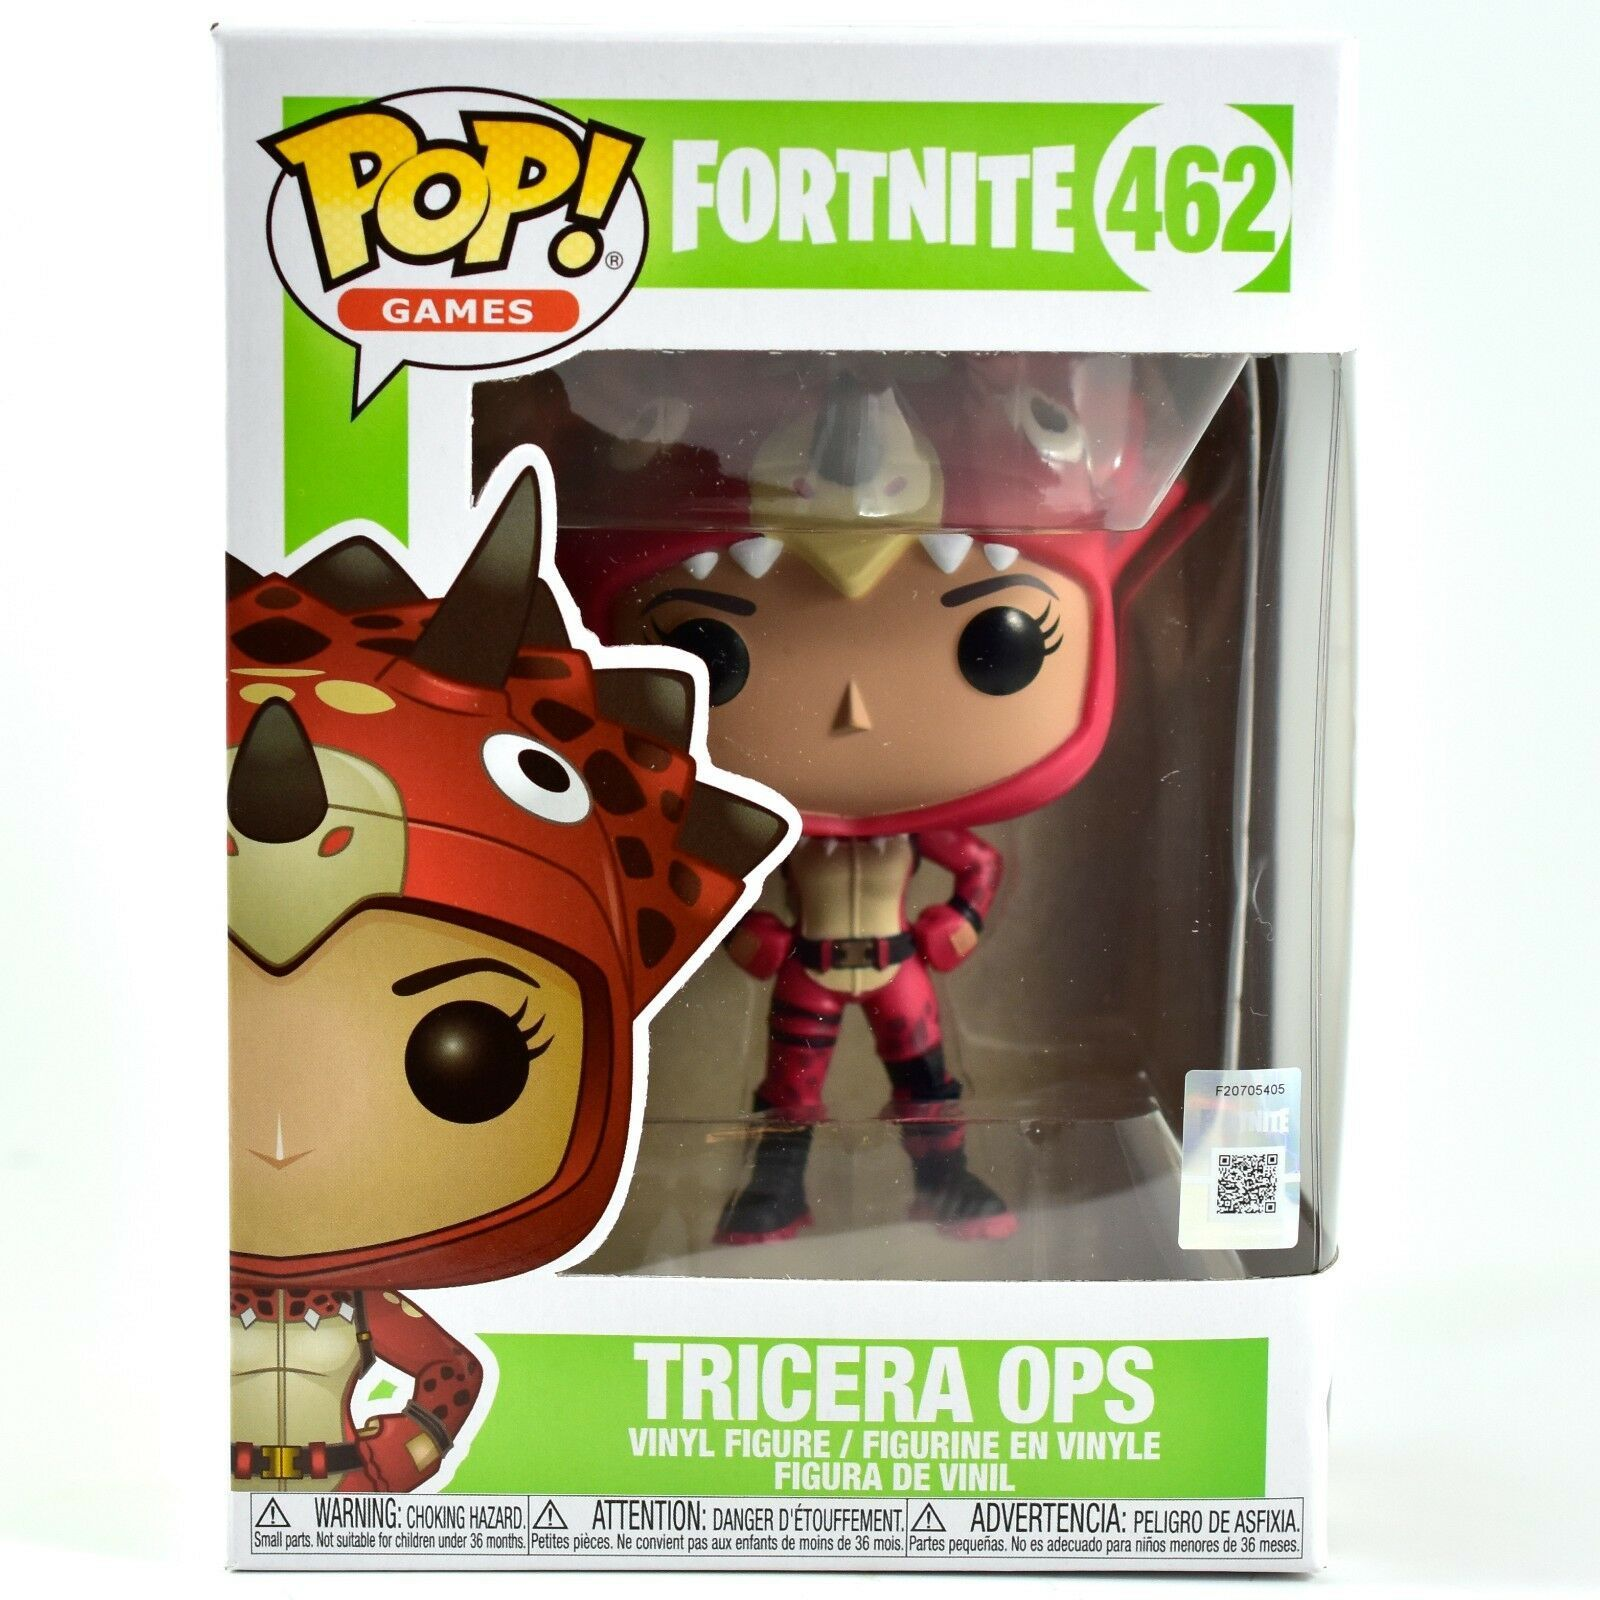 Funko Pop! Games Fortnite Character Tricera Ops #462 Vinyl Action Figure IN HAND